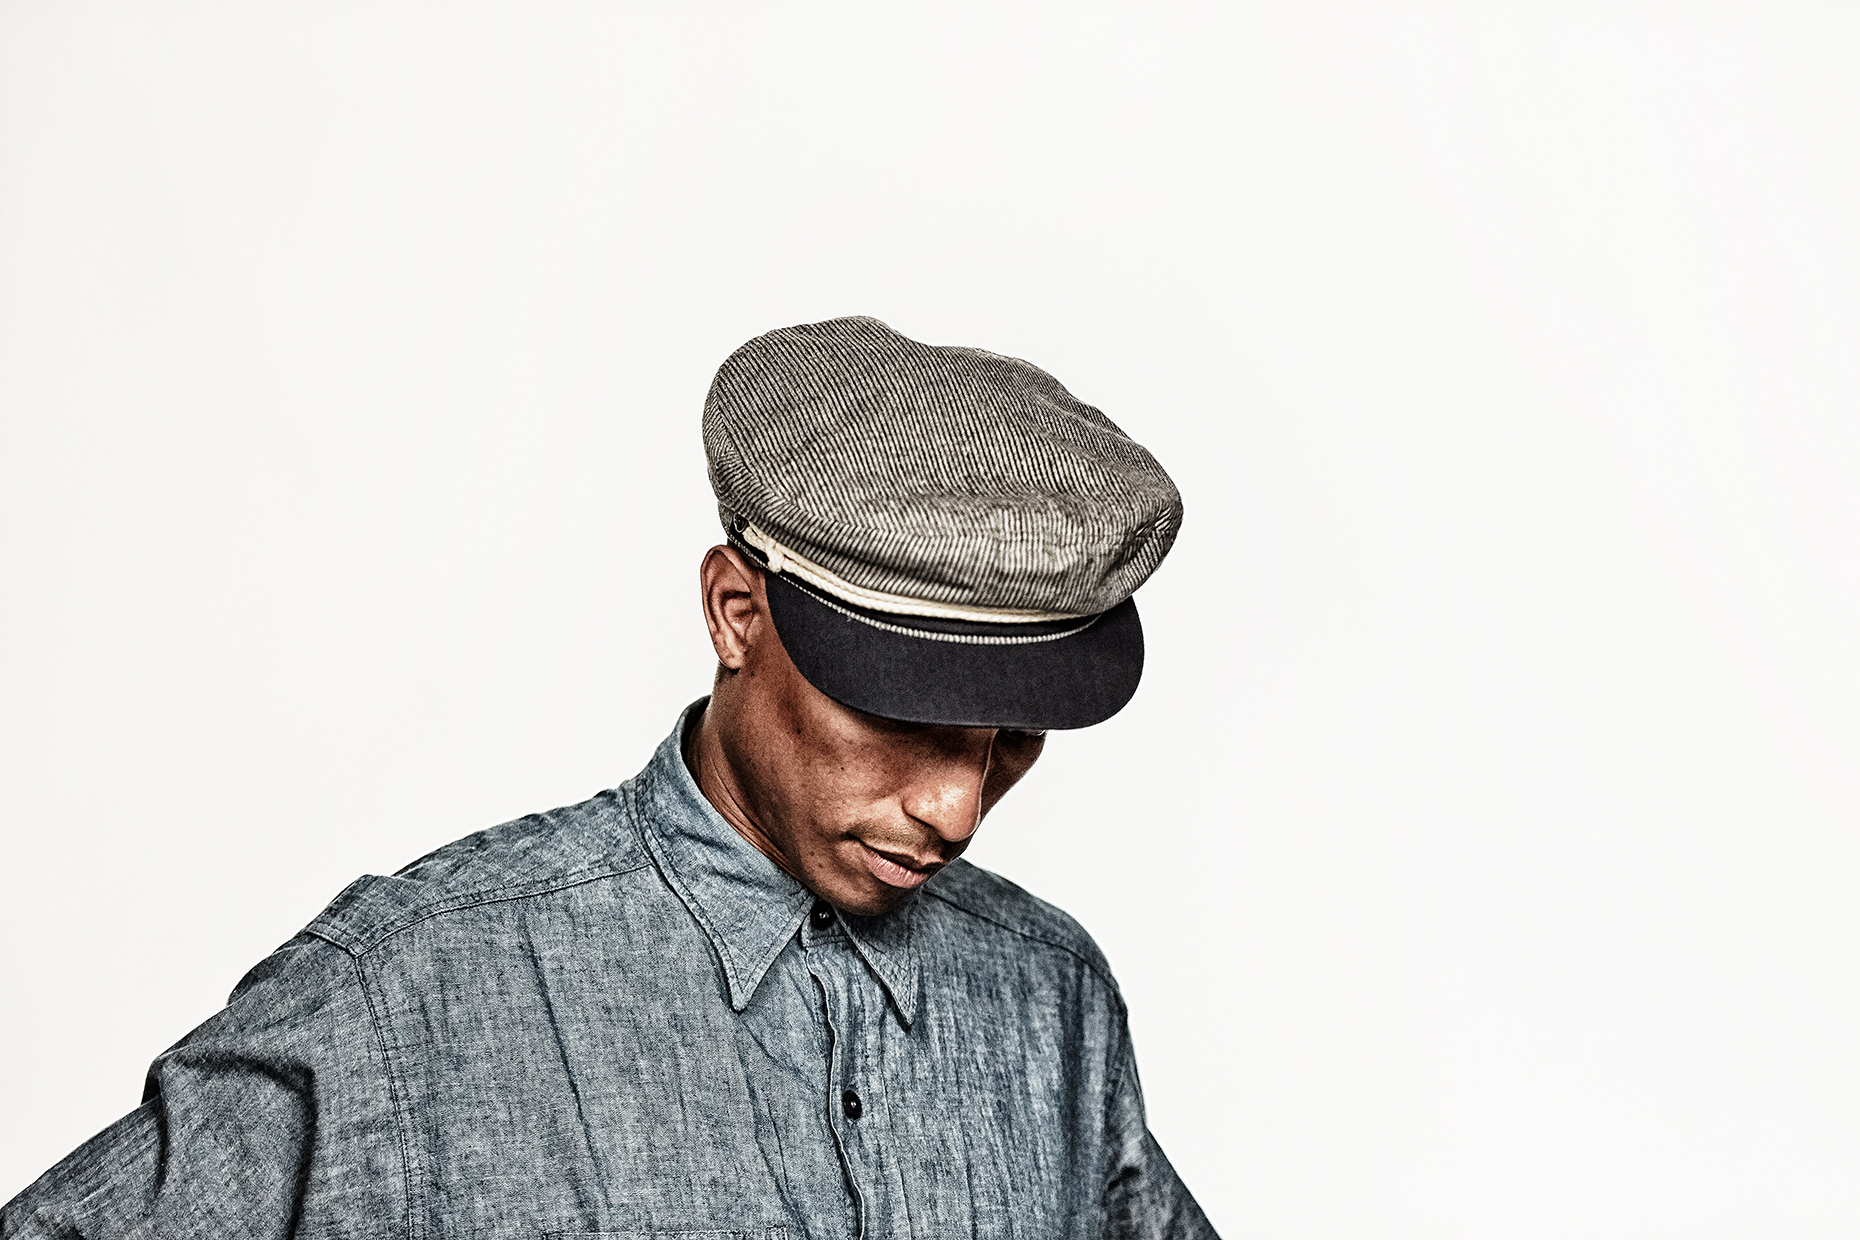 SimonHanna_Pharrell_HeadDown_FINAL